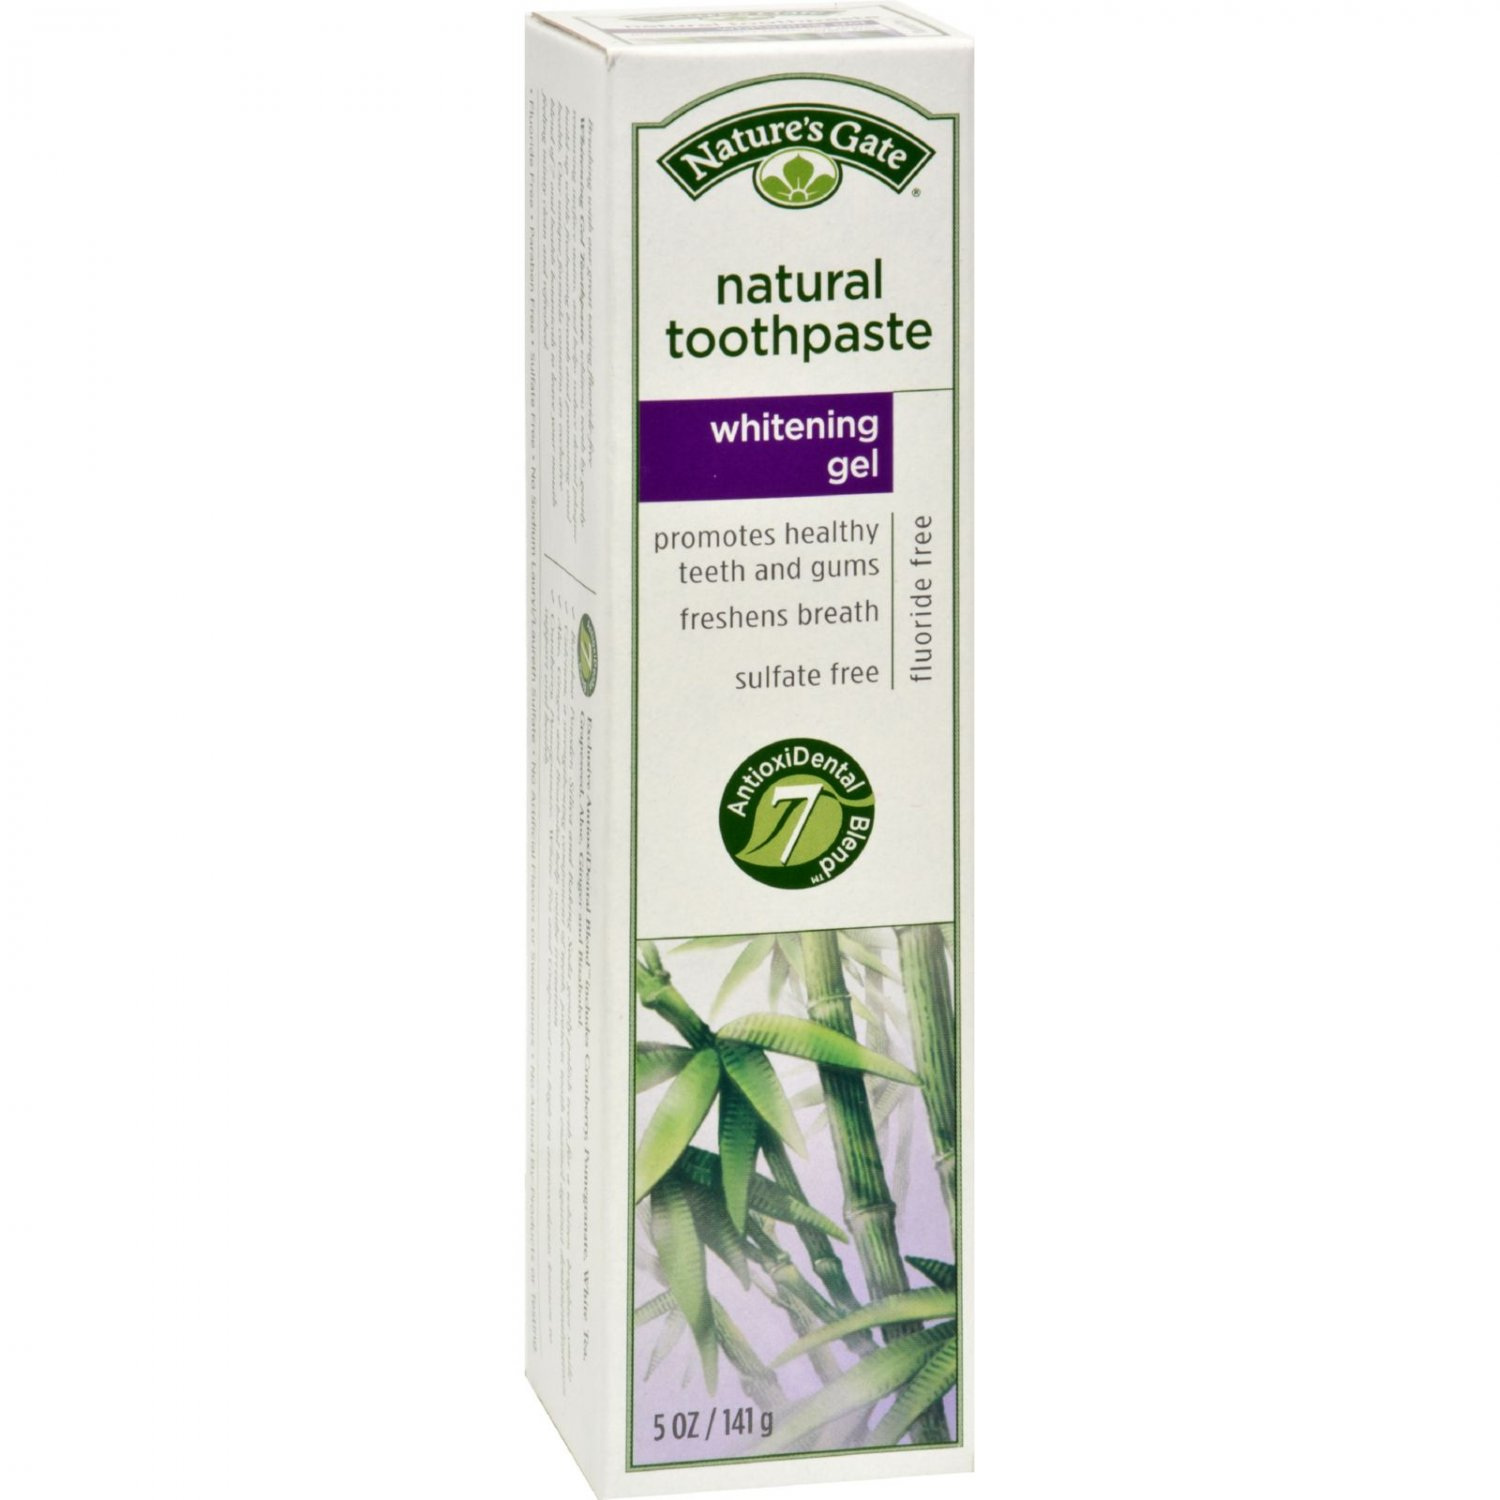 Nature's Gate Natural Toothpaste Gel Whitening - 5 oz - Case of 6